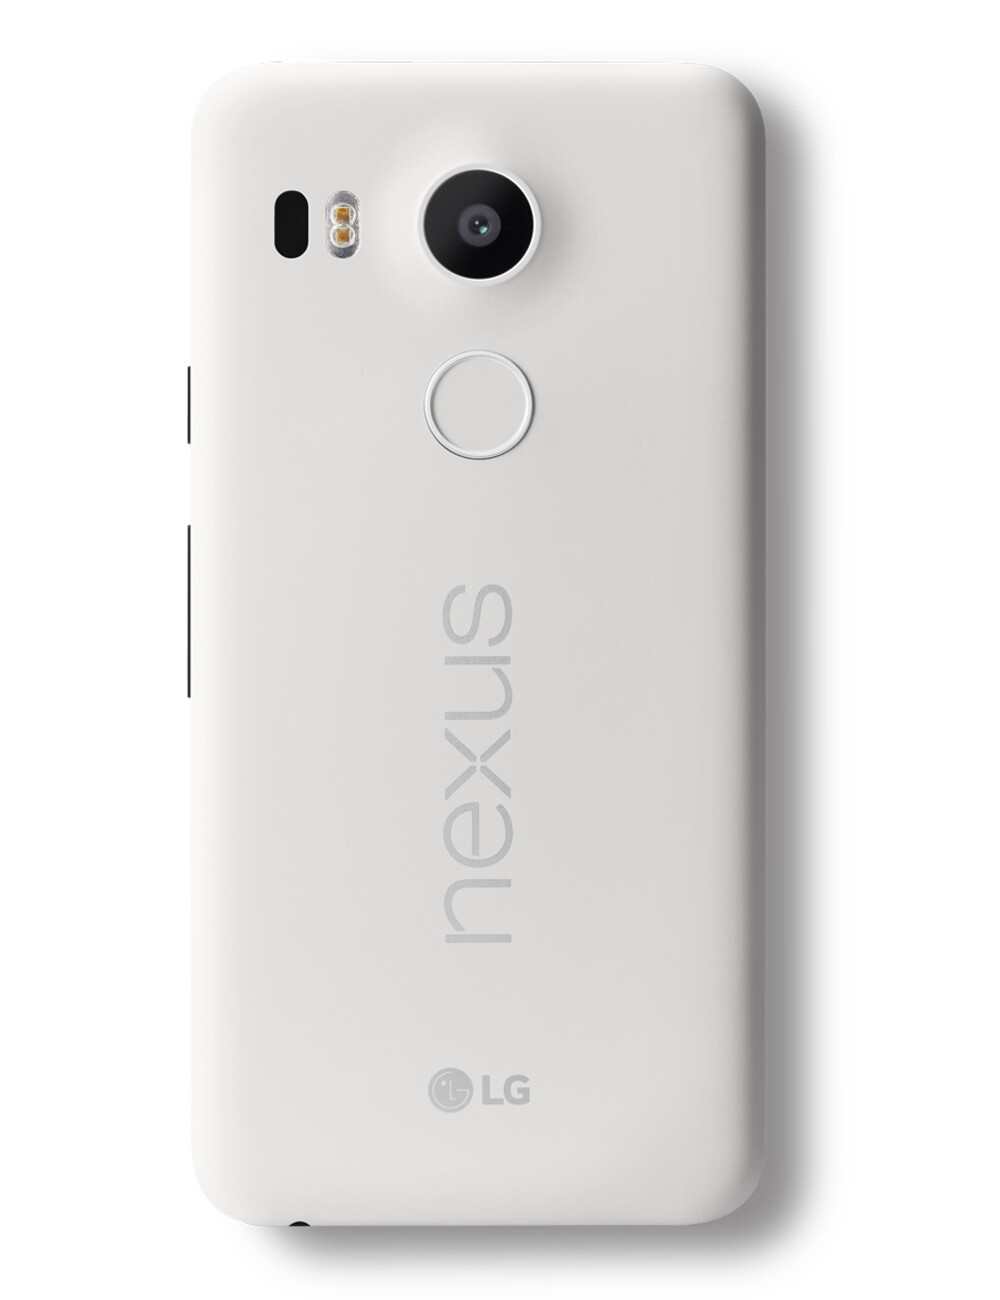 Google Nexus 5X: the specs review